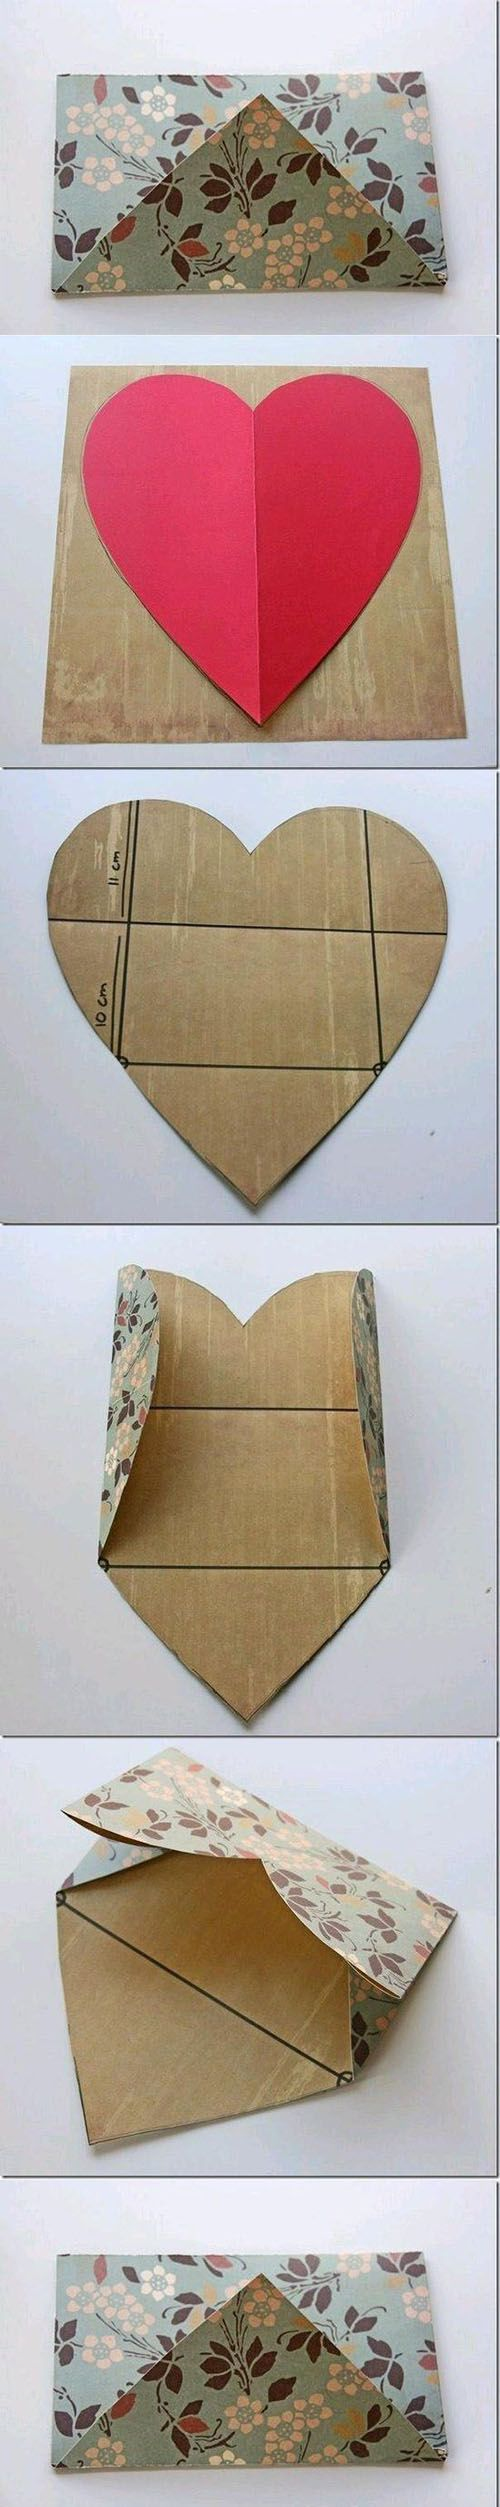 Diy Beautiful Envelope | DIY & Crafts Tutorials Precut hearts...kids can write or draw and send to someone